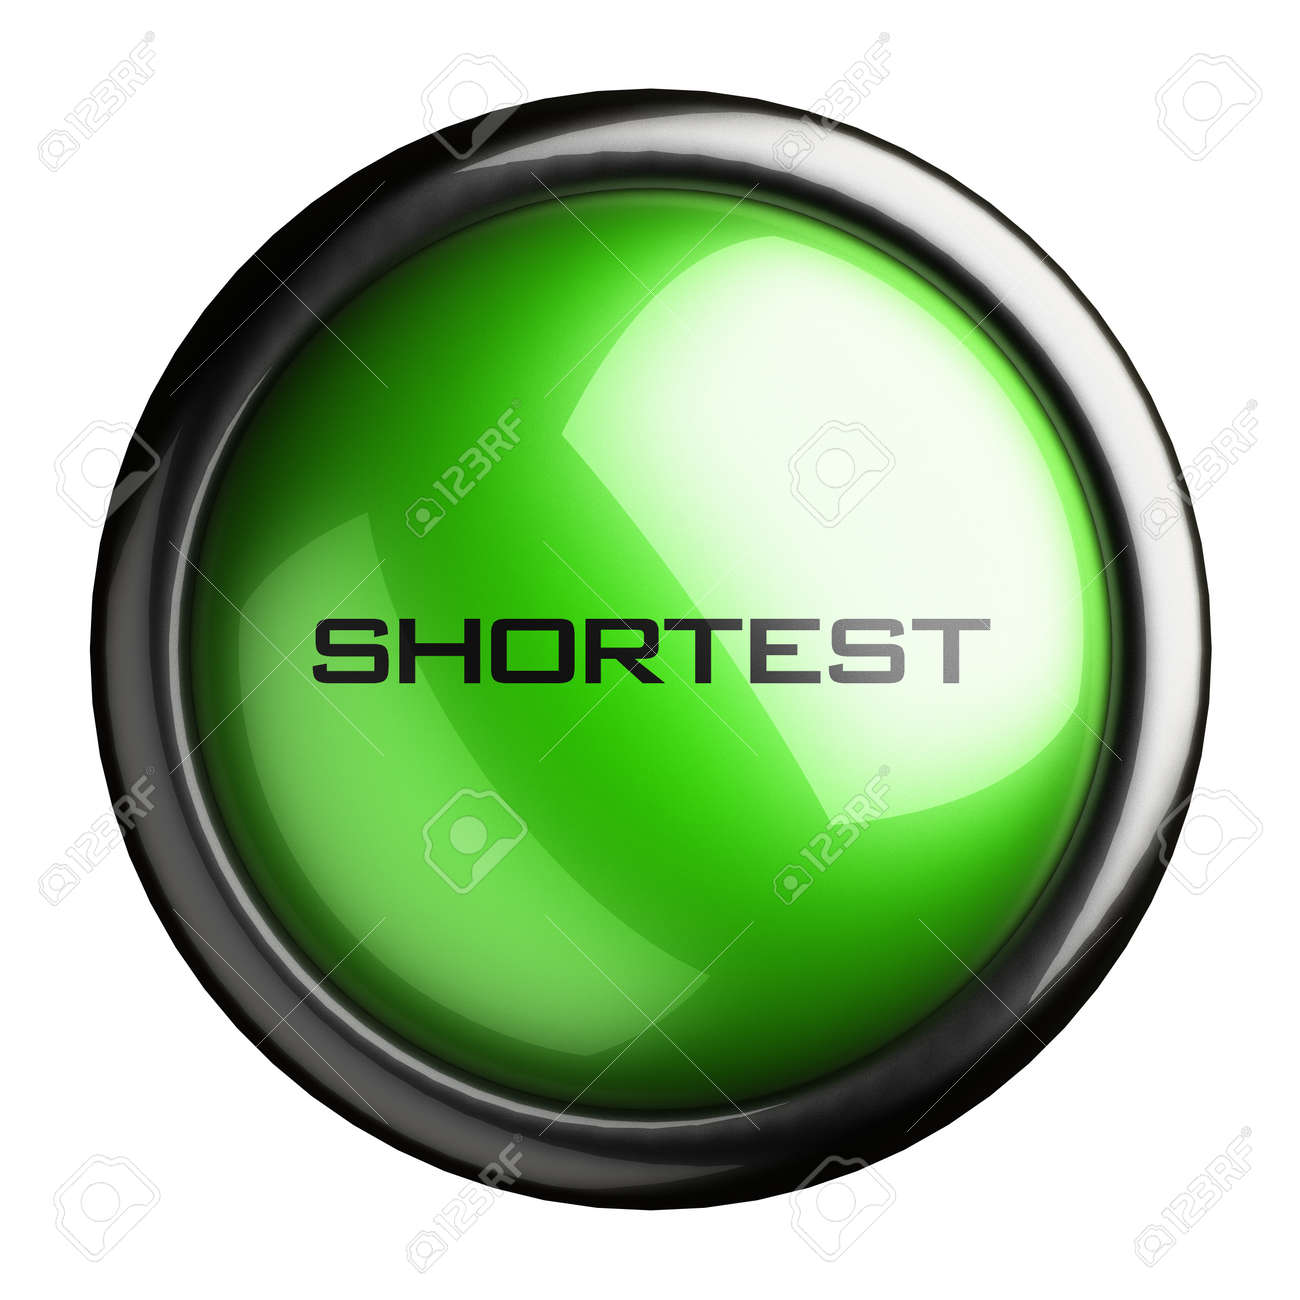 Word on the button Stock Photo - 16551085